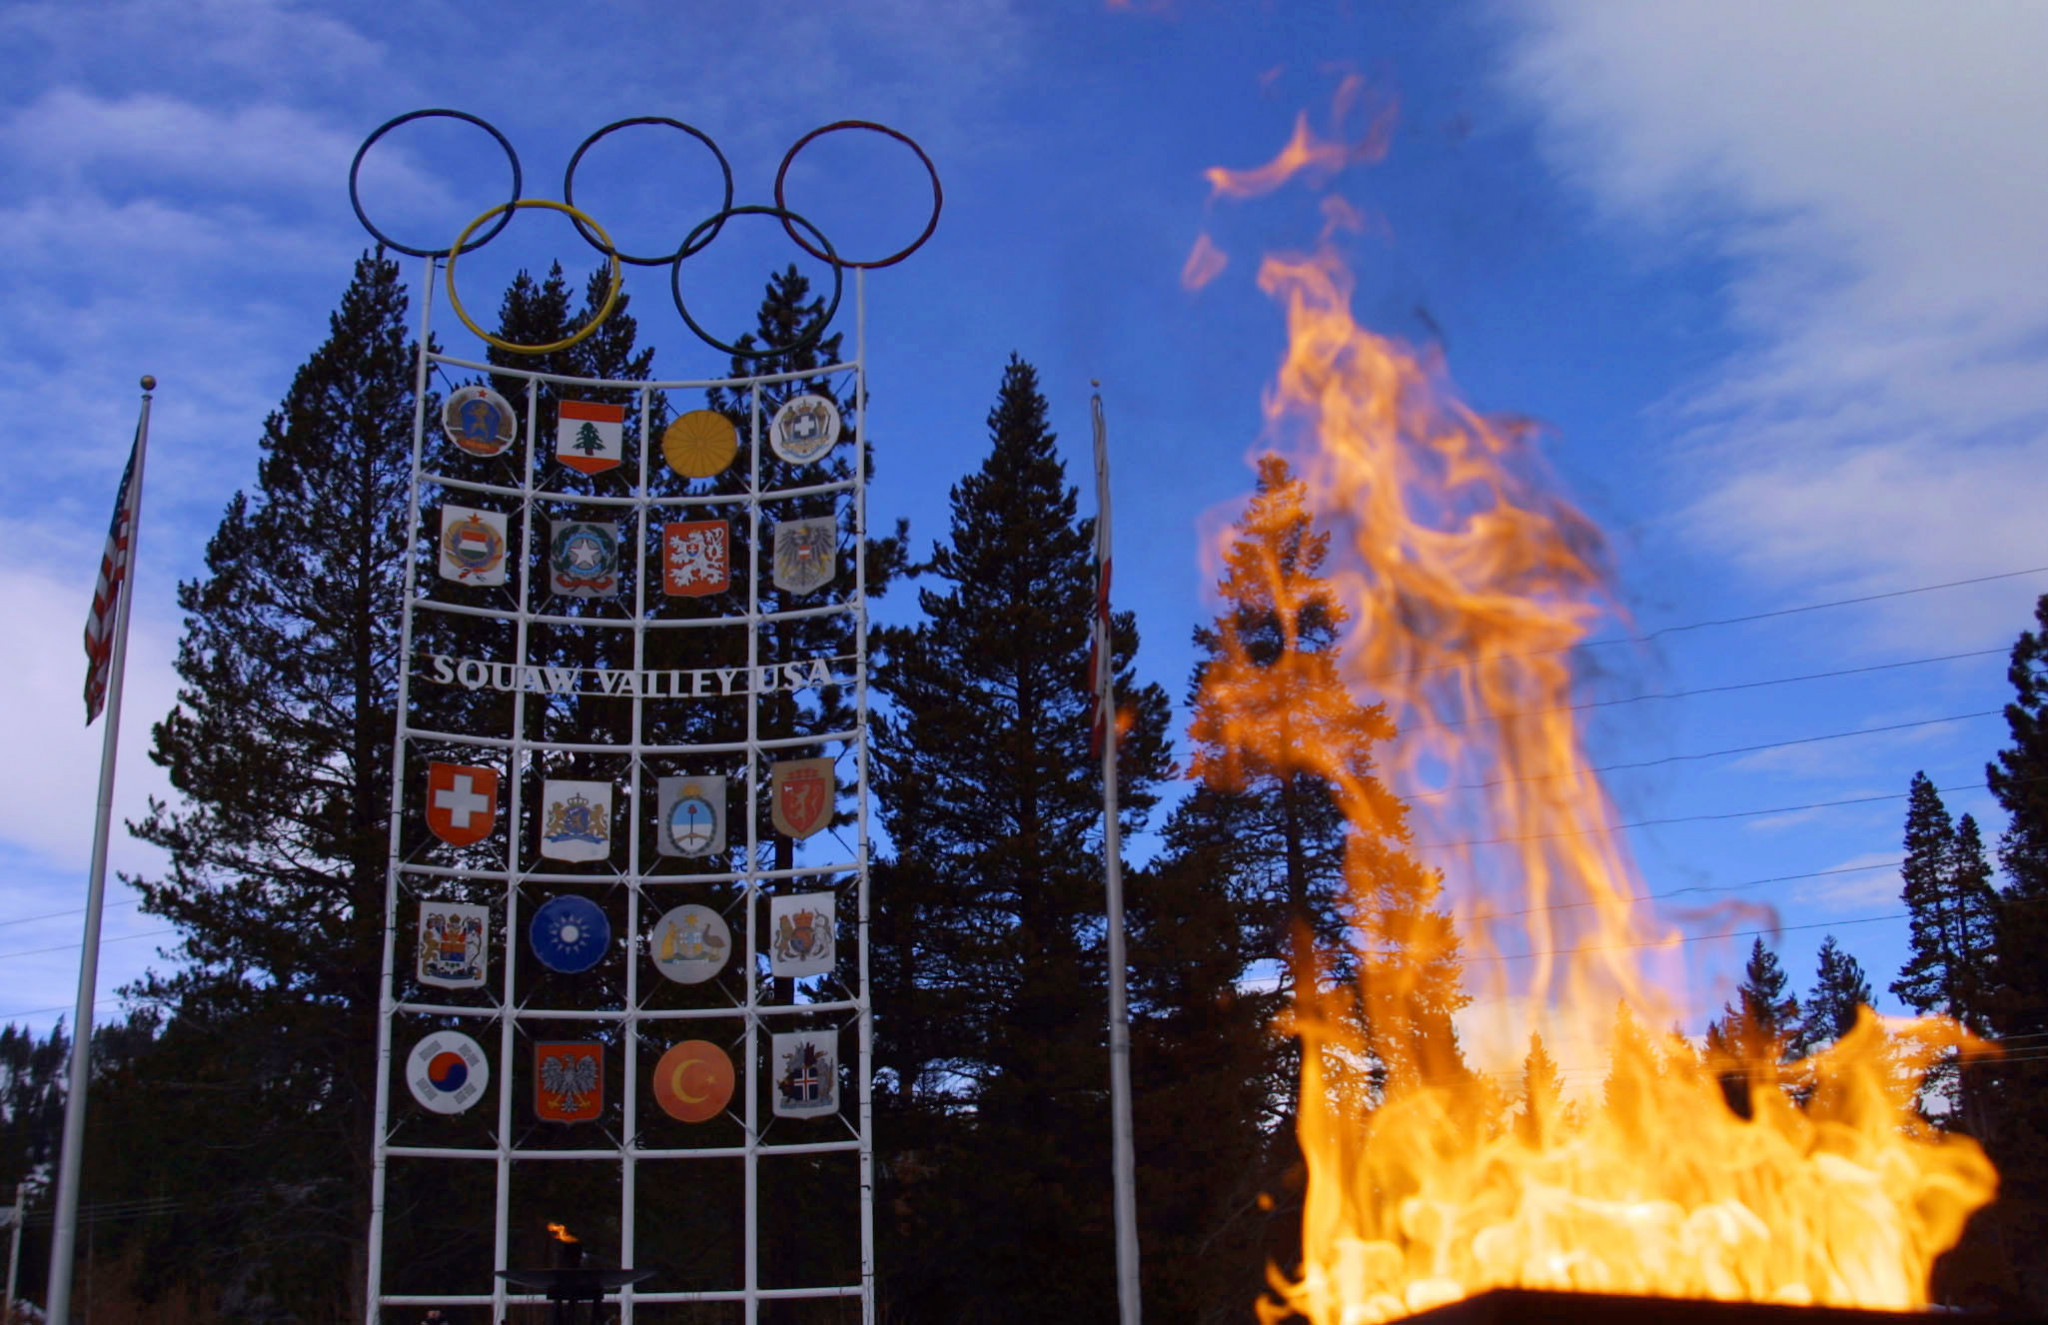 Winter Olympic host Squaw Valley Ski Resort changes name over derogatory term